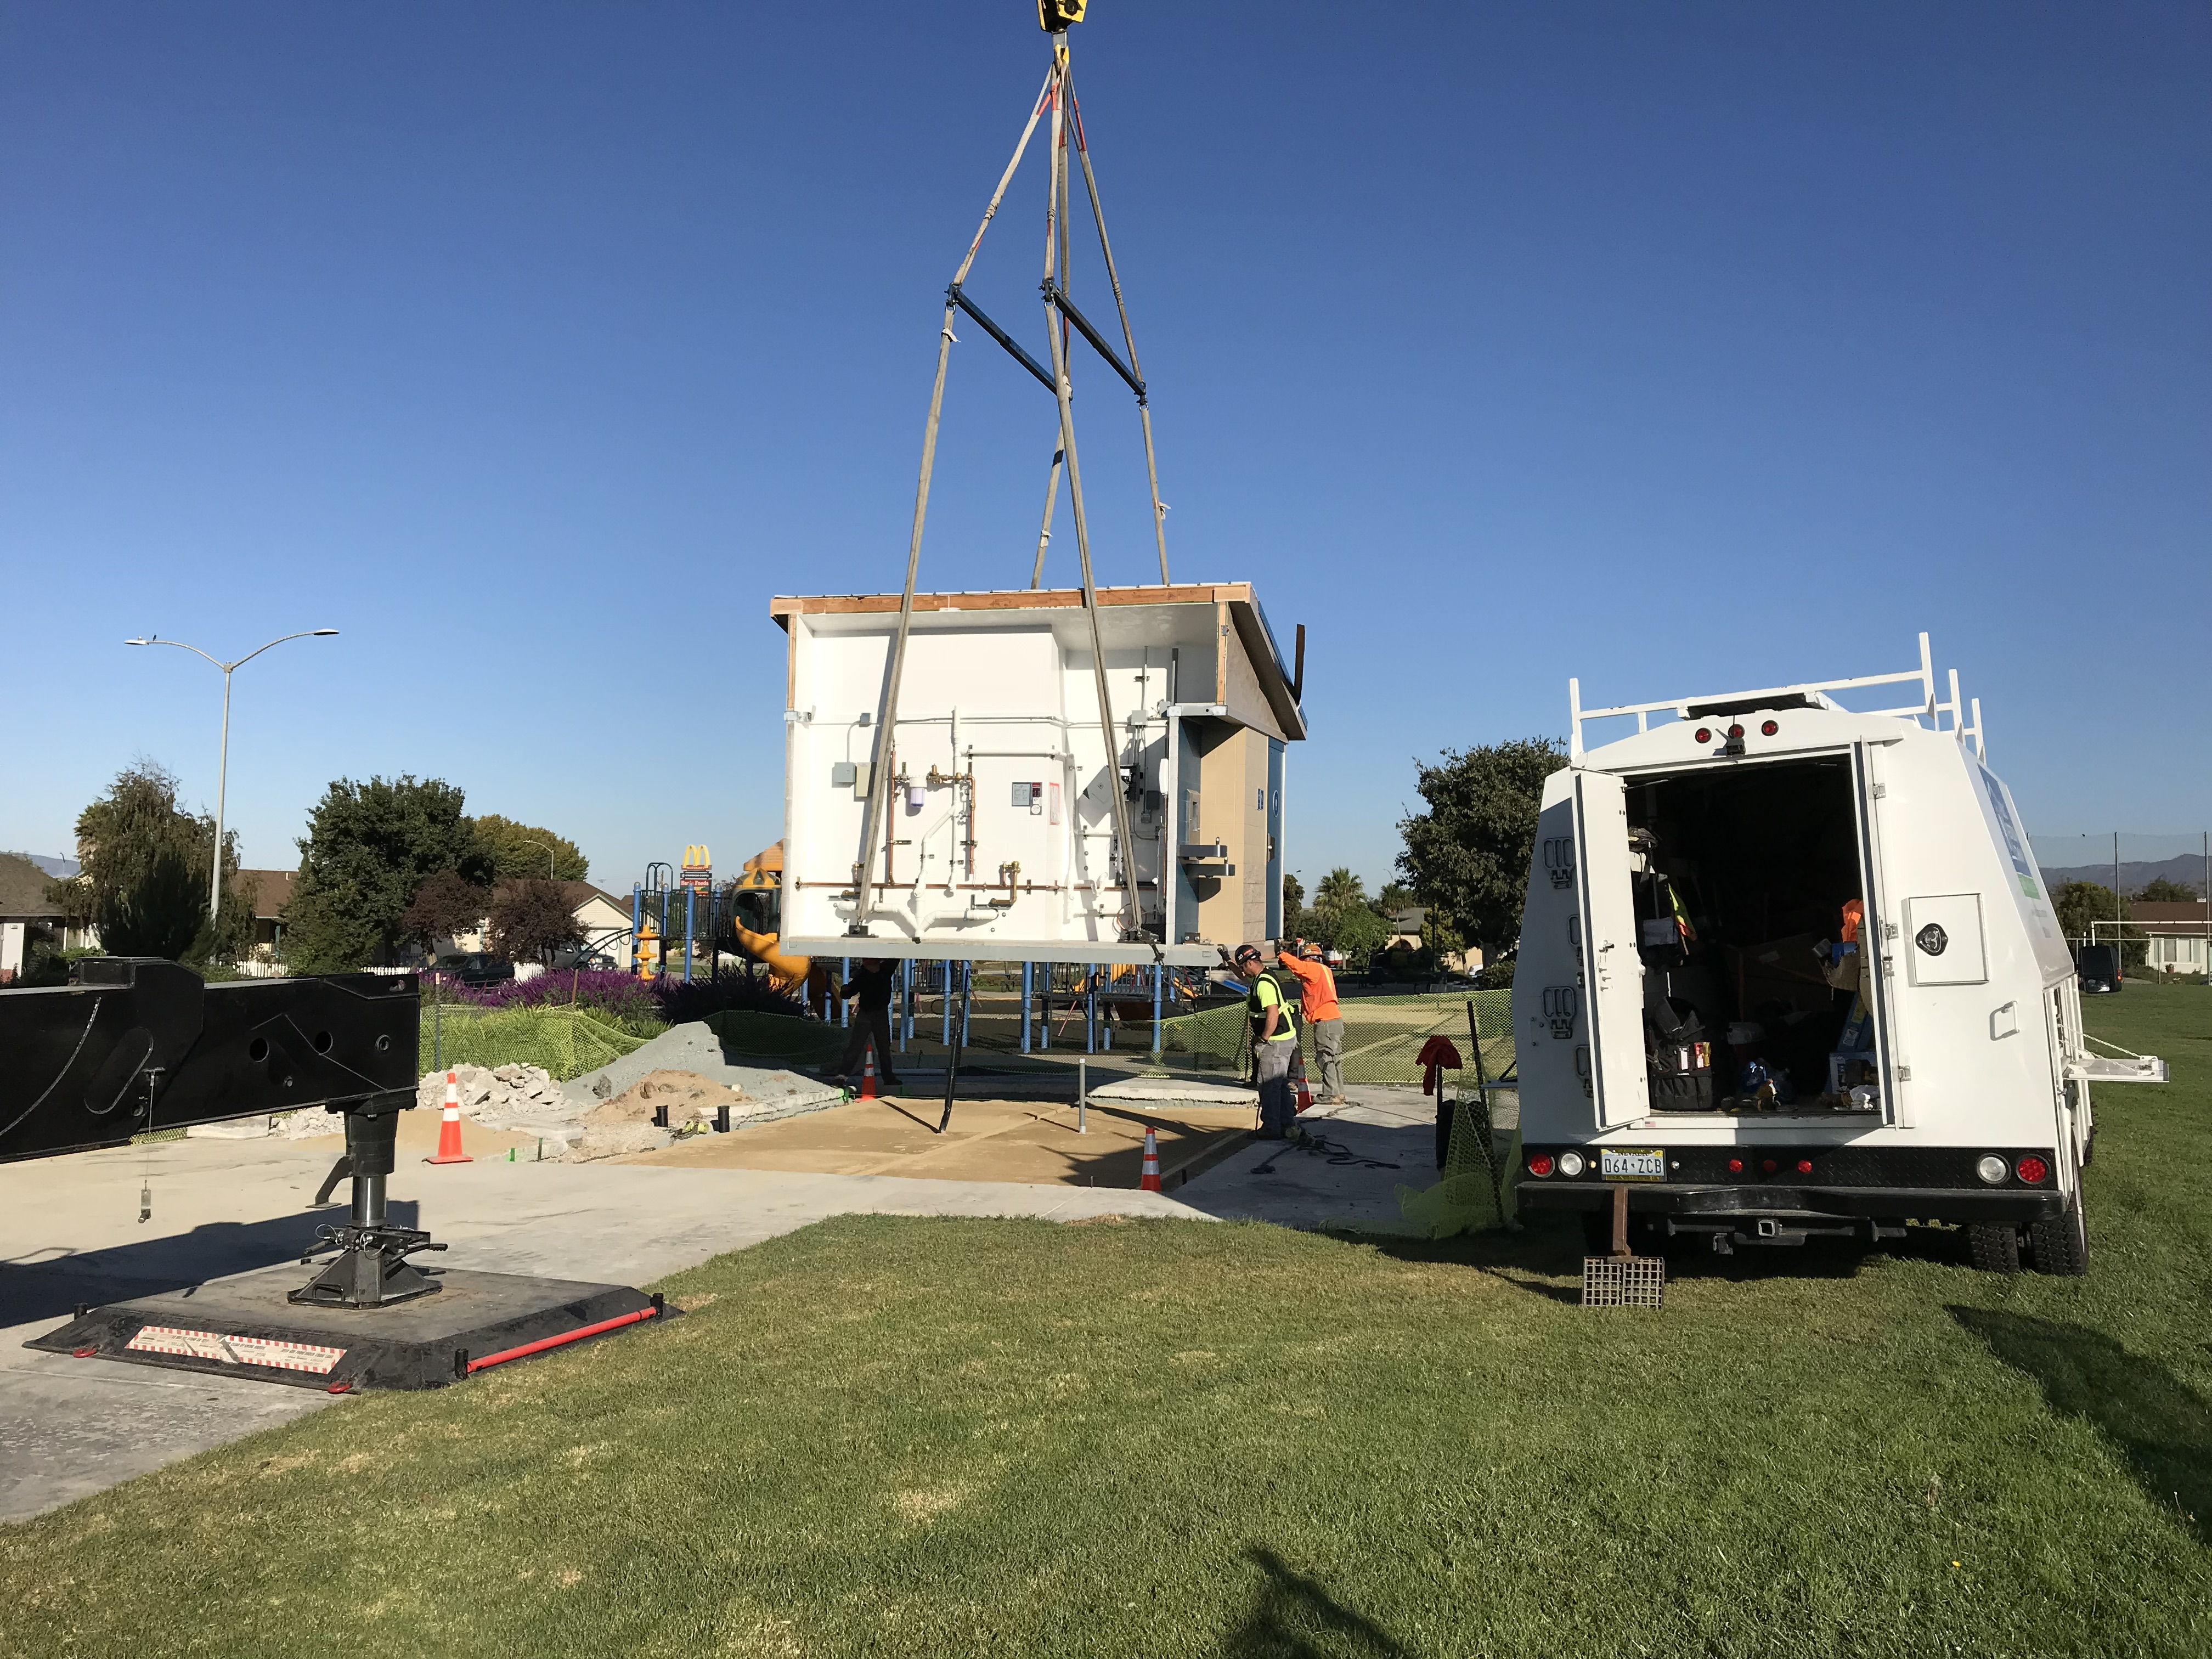 crews work to install new prefabricated restroom facility